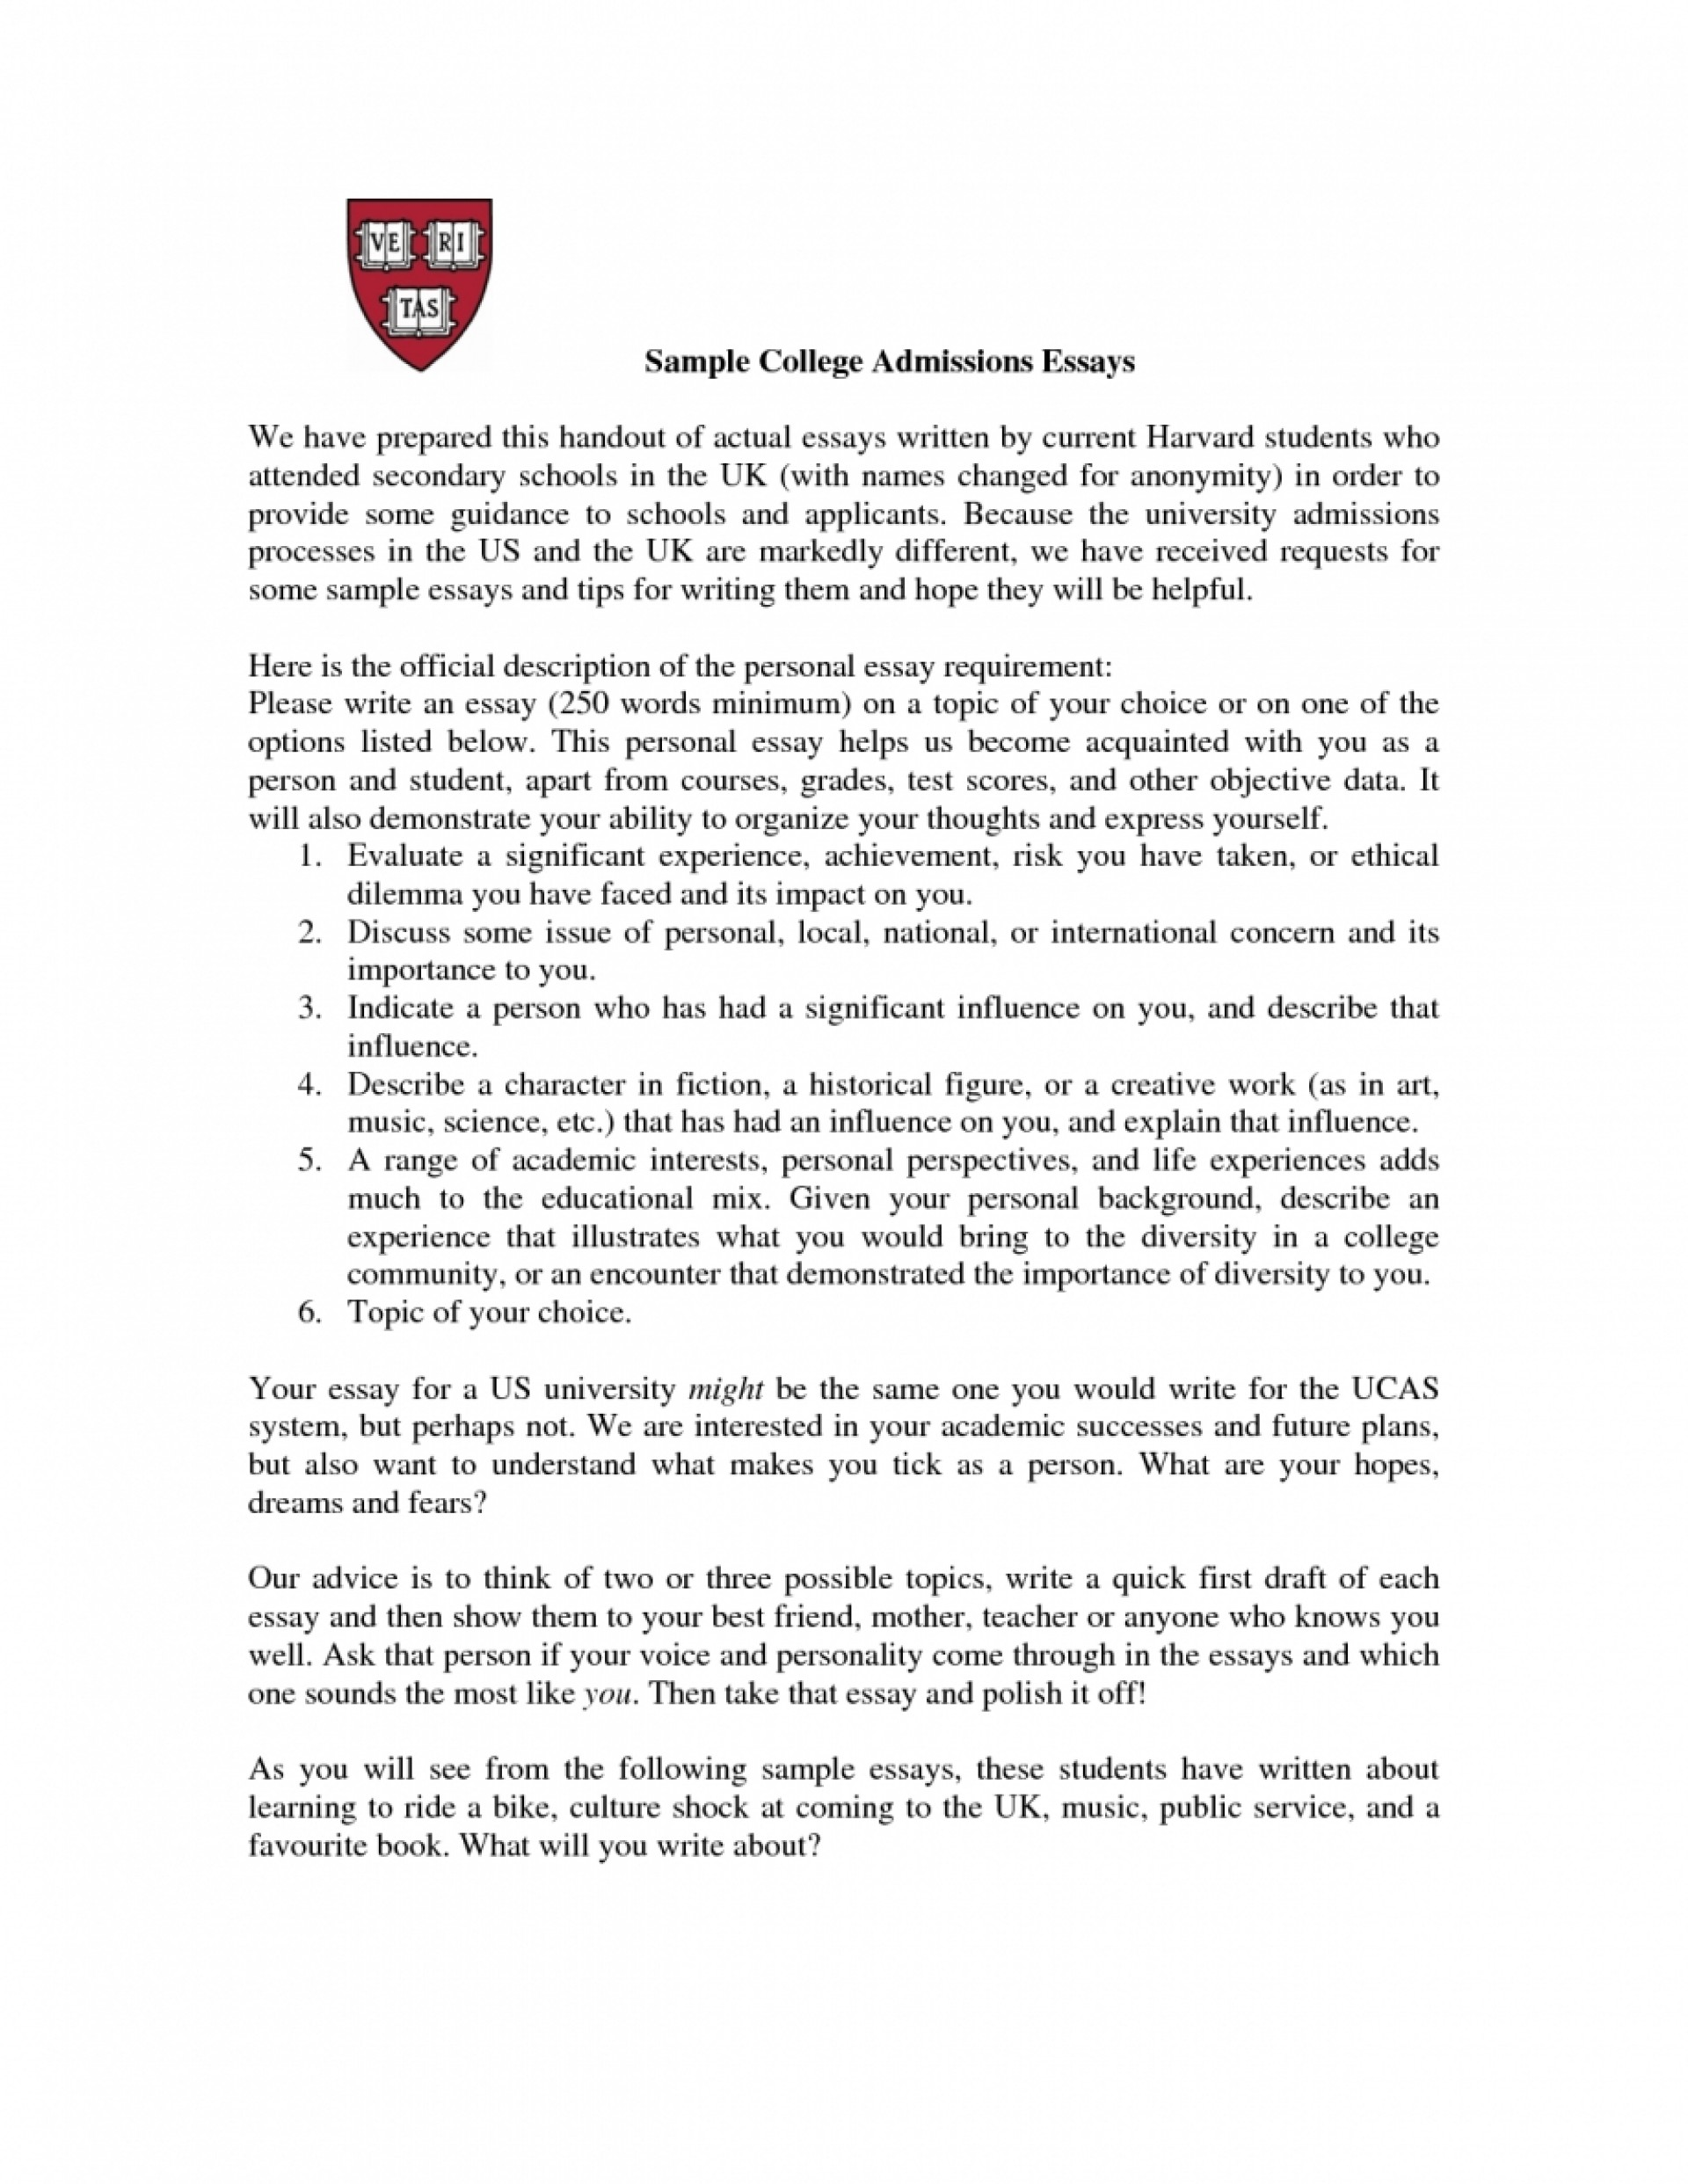 010 College Admissions Essay Sample About Yourself Nemetas Finding Topics Writing Best Essays Talk Tell Us Outline Prompts Me Admission Rare Service App Harvard 1920